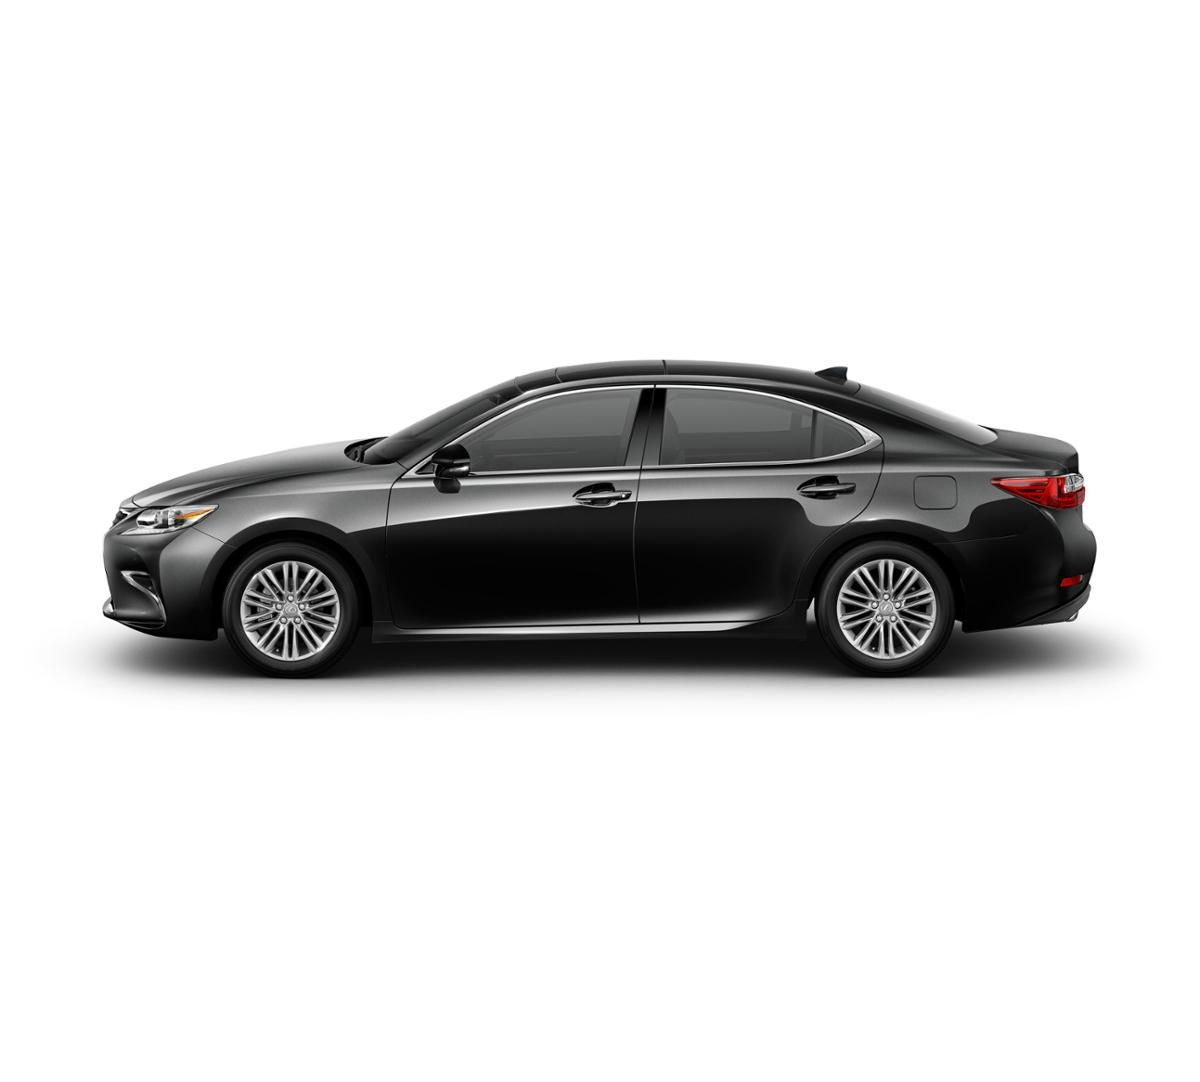 2017 Lexus ES 350 Vehicle Photo in Danvers, MA 01923